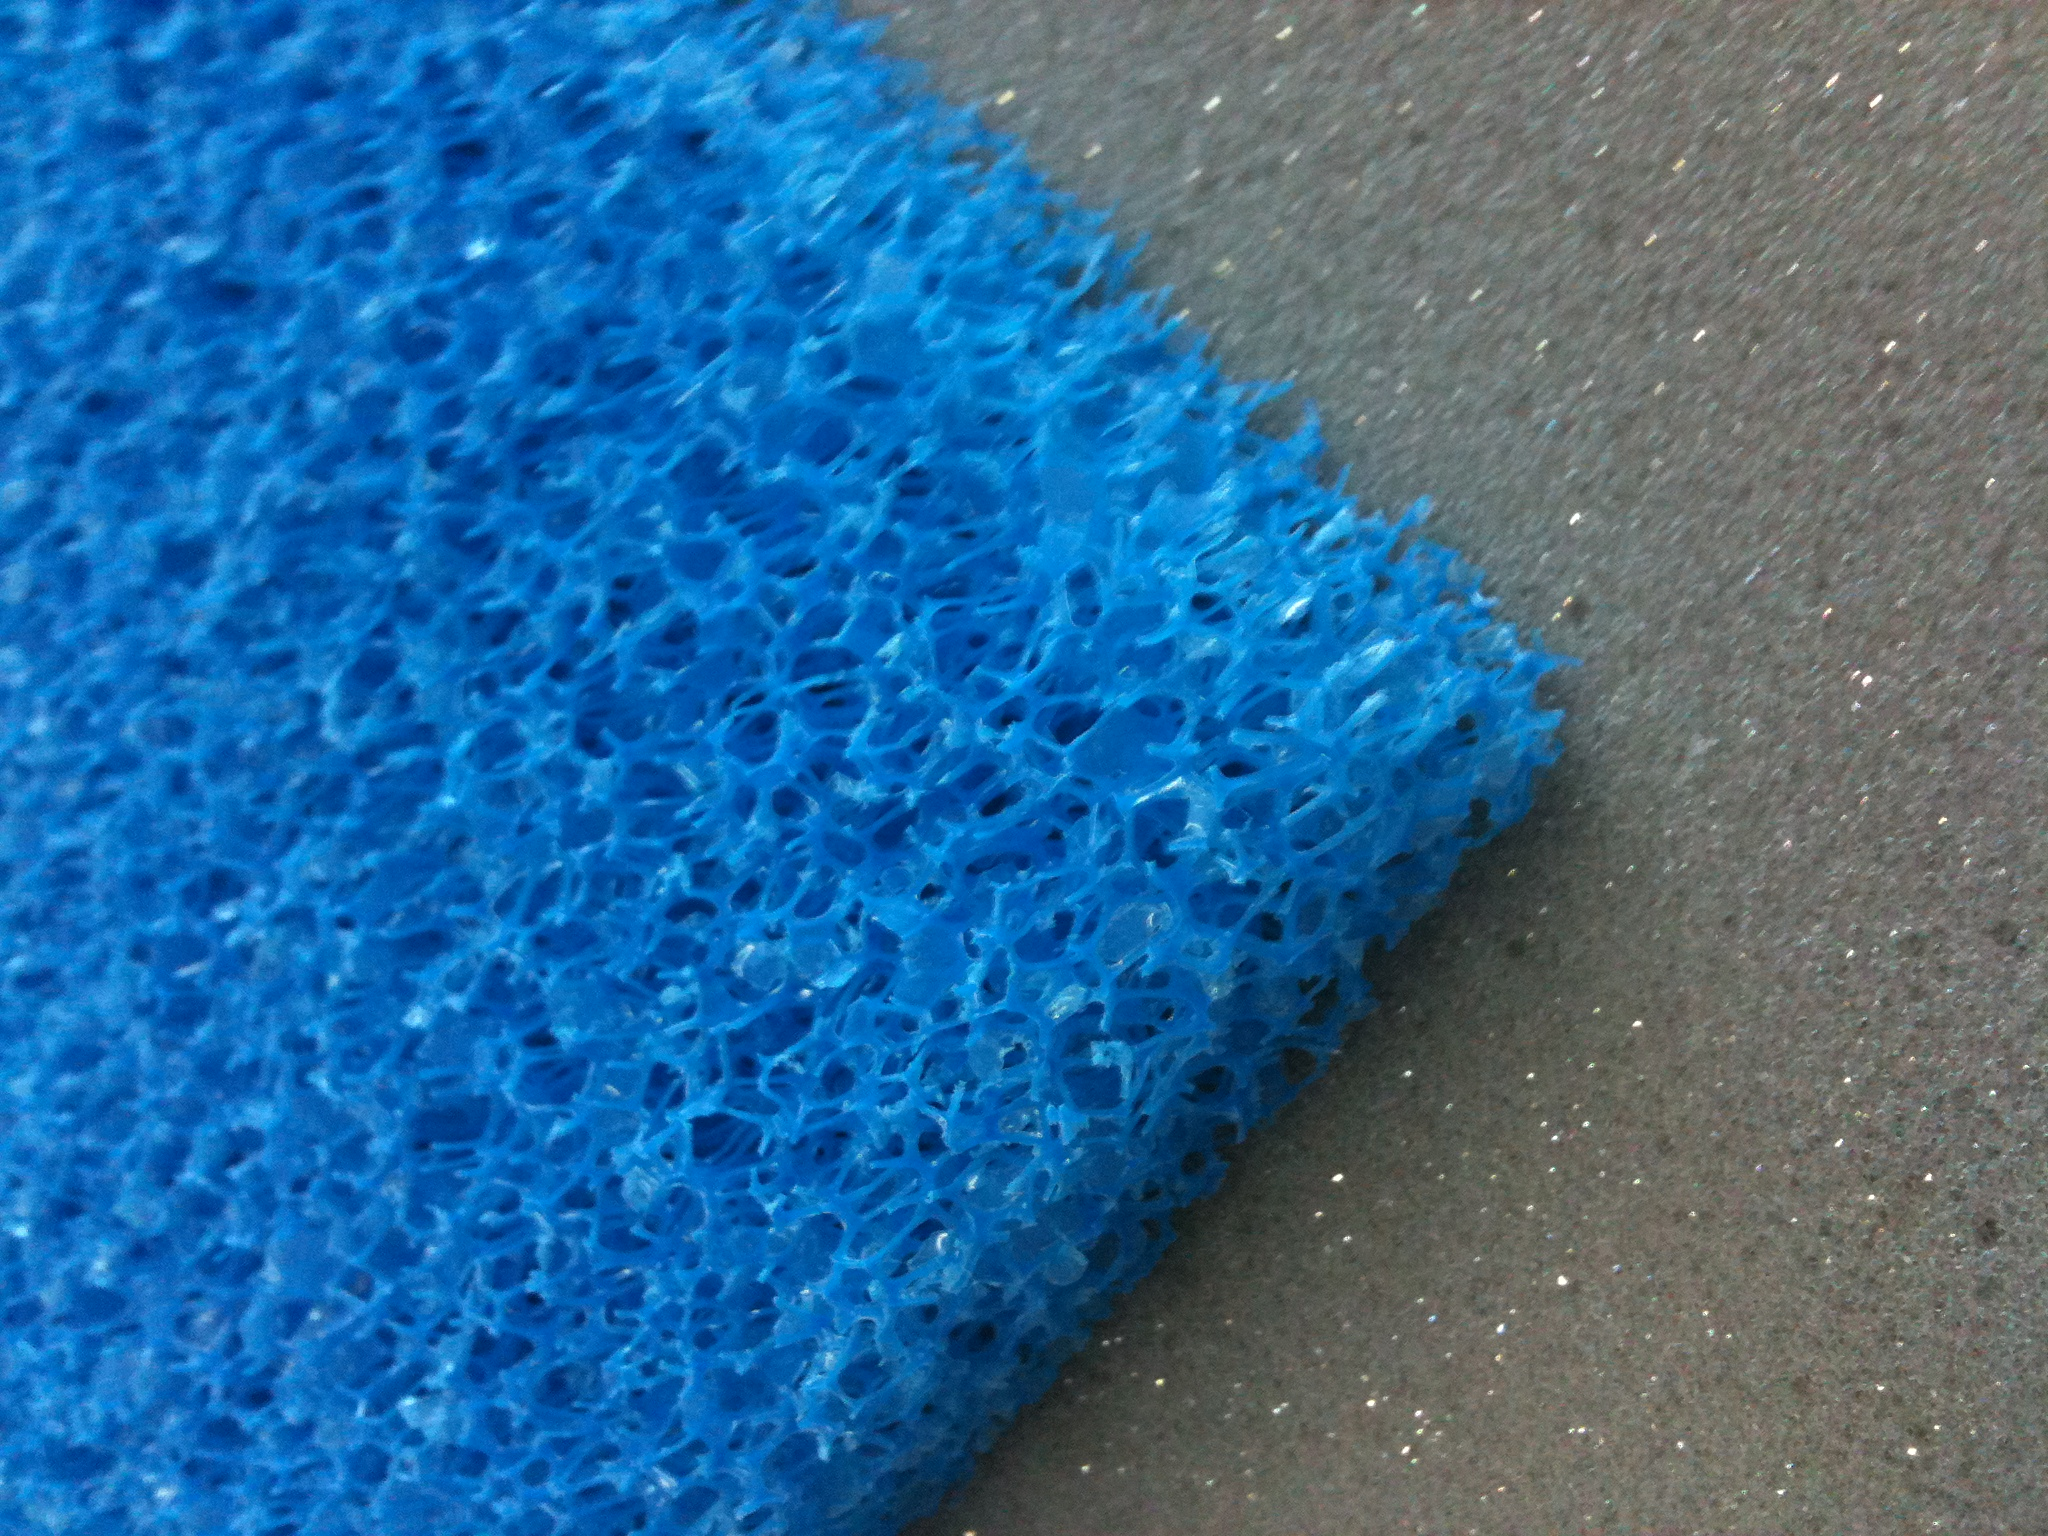 Course Filter Foam Supplied At The Foam Shop Suppliers Of